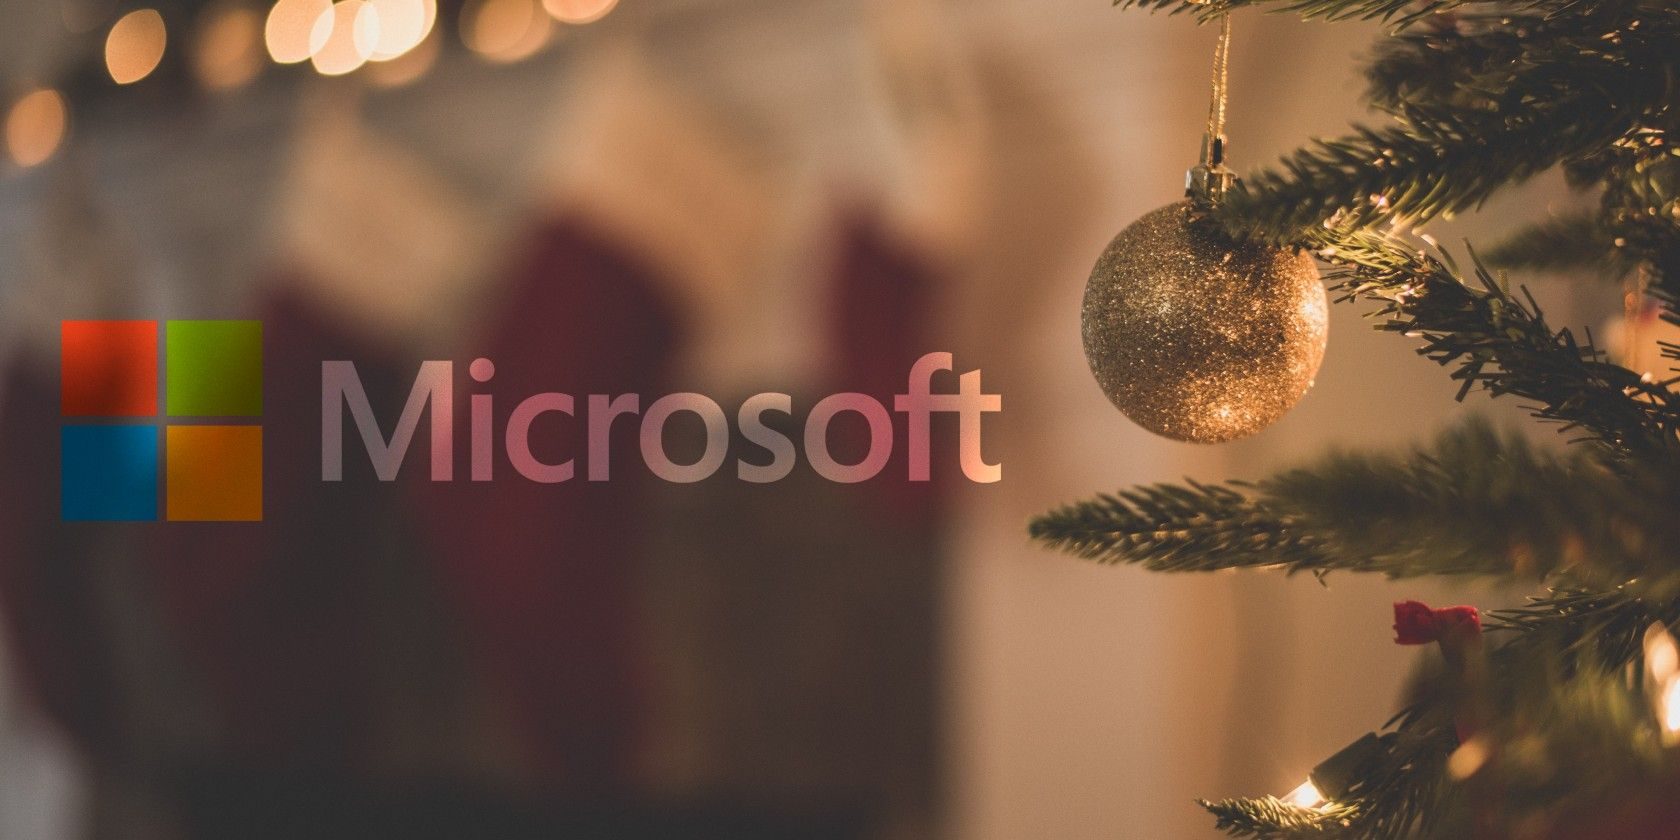 Microsoft Releases an Album of Holiday Hits